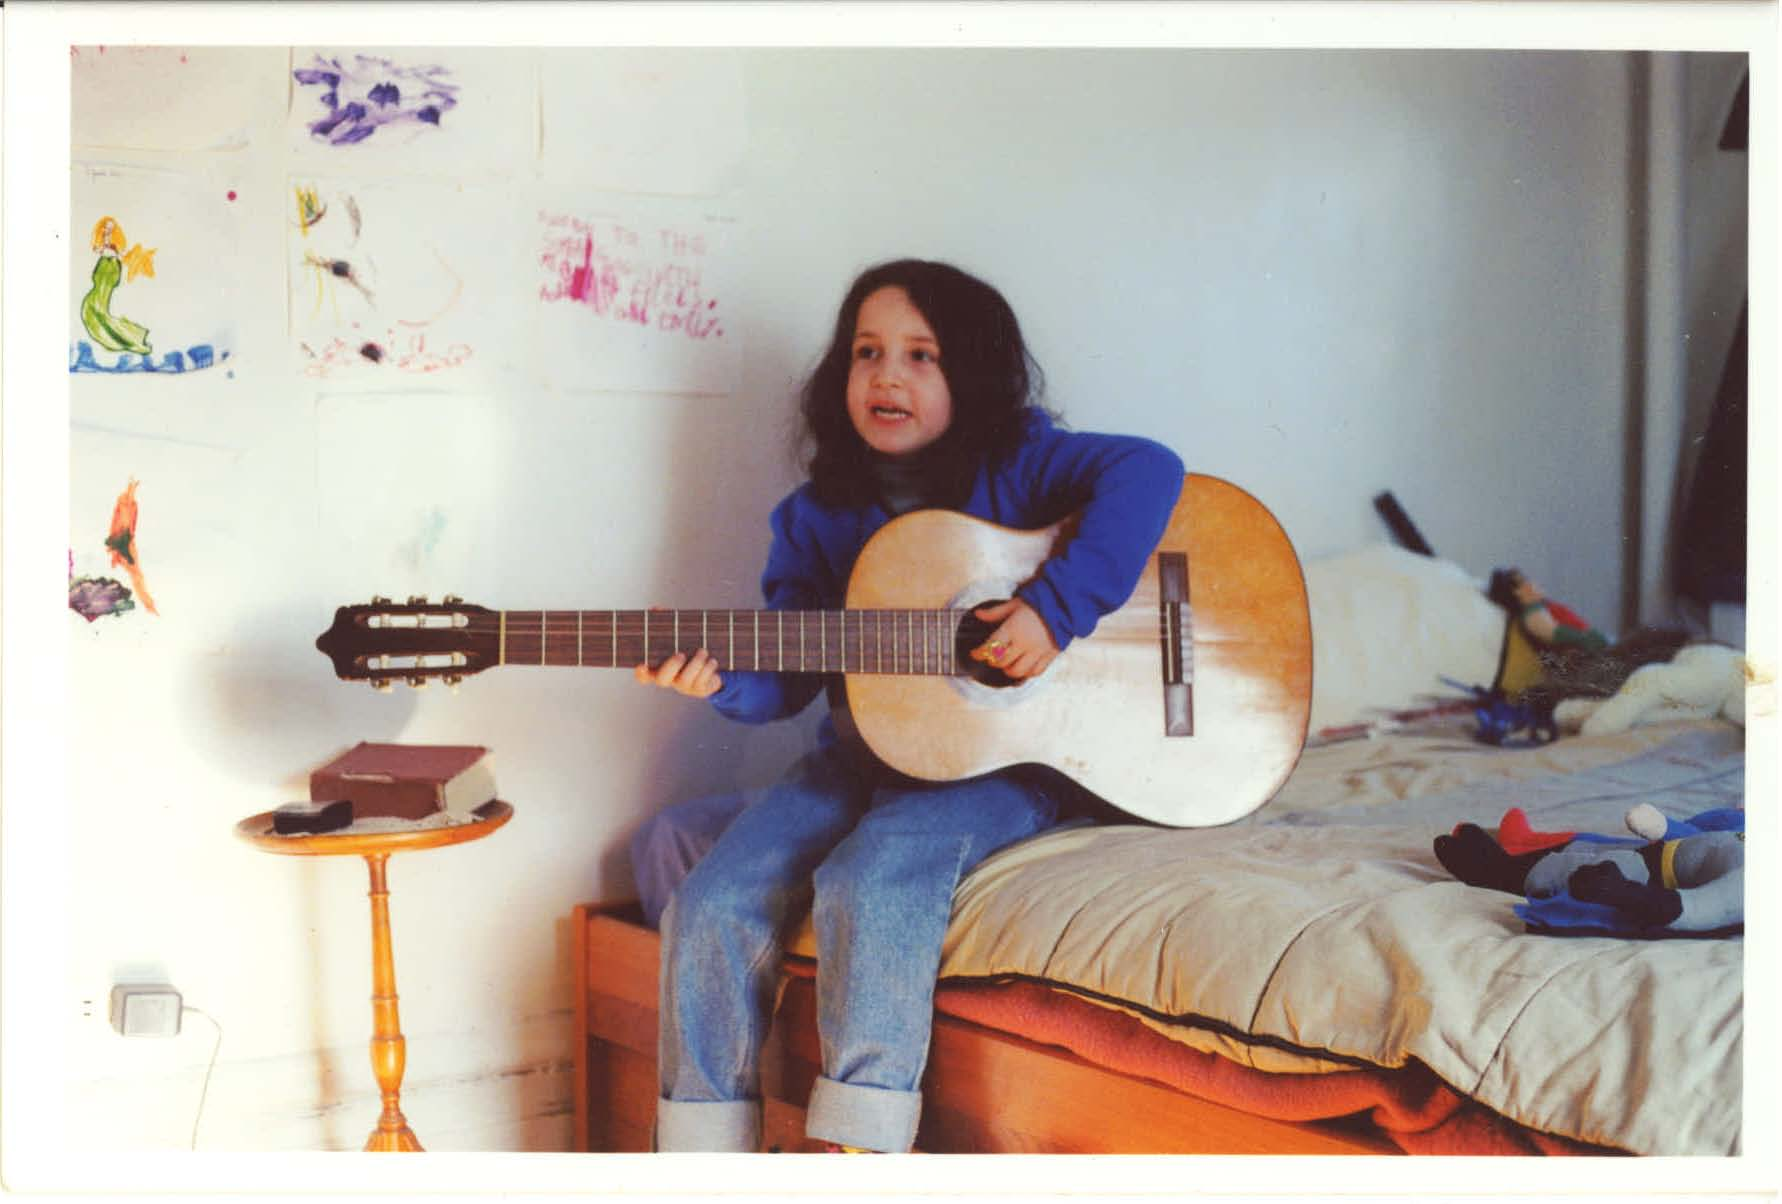 Camille at my place (2001)